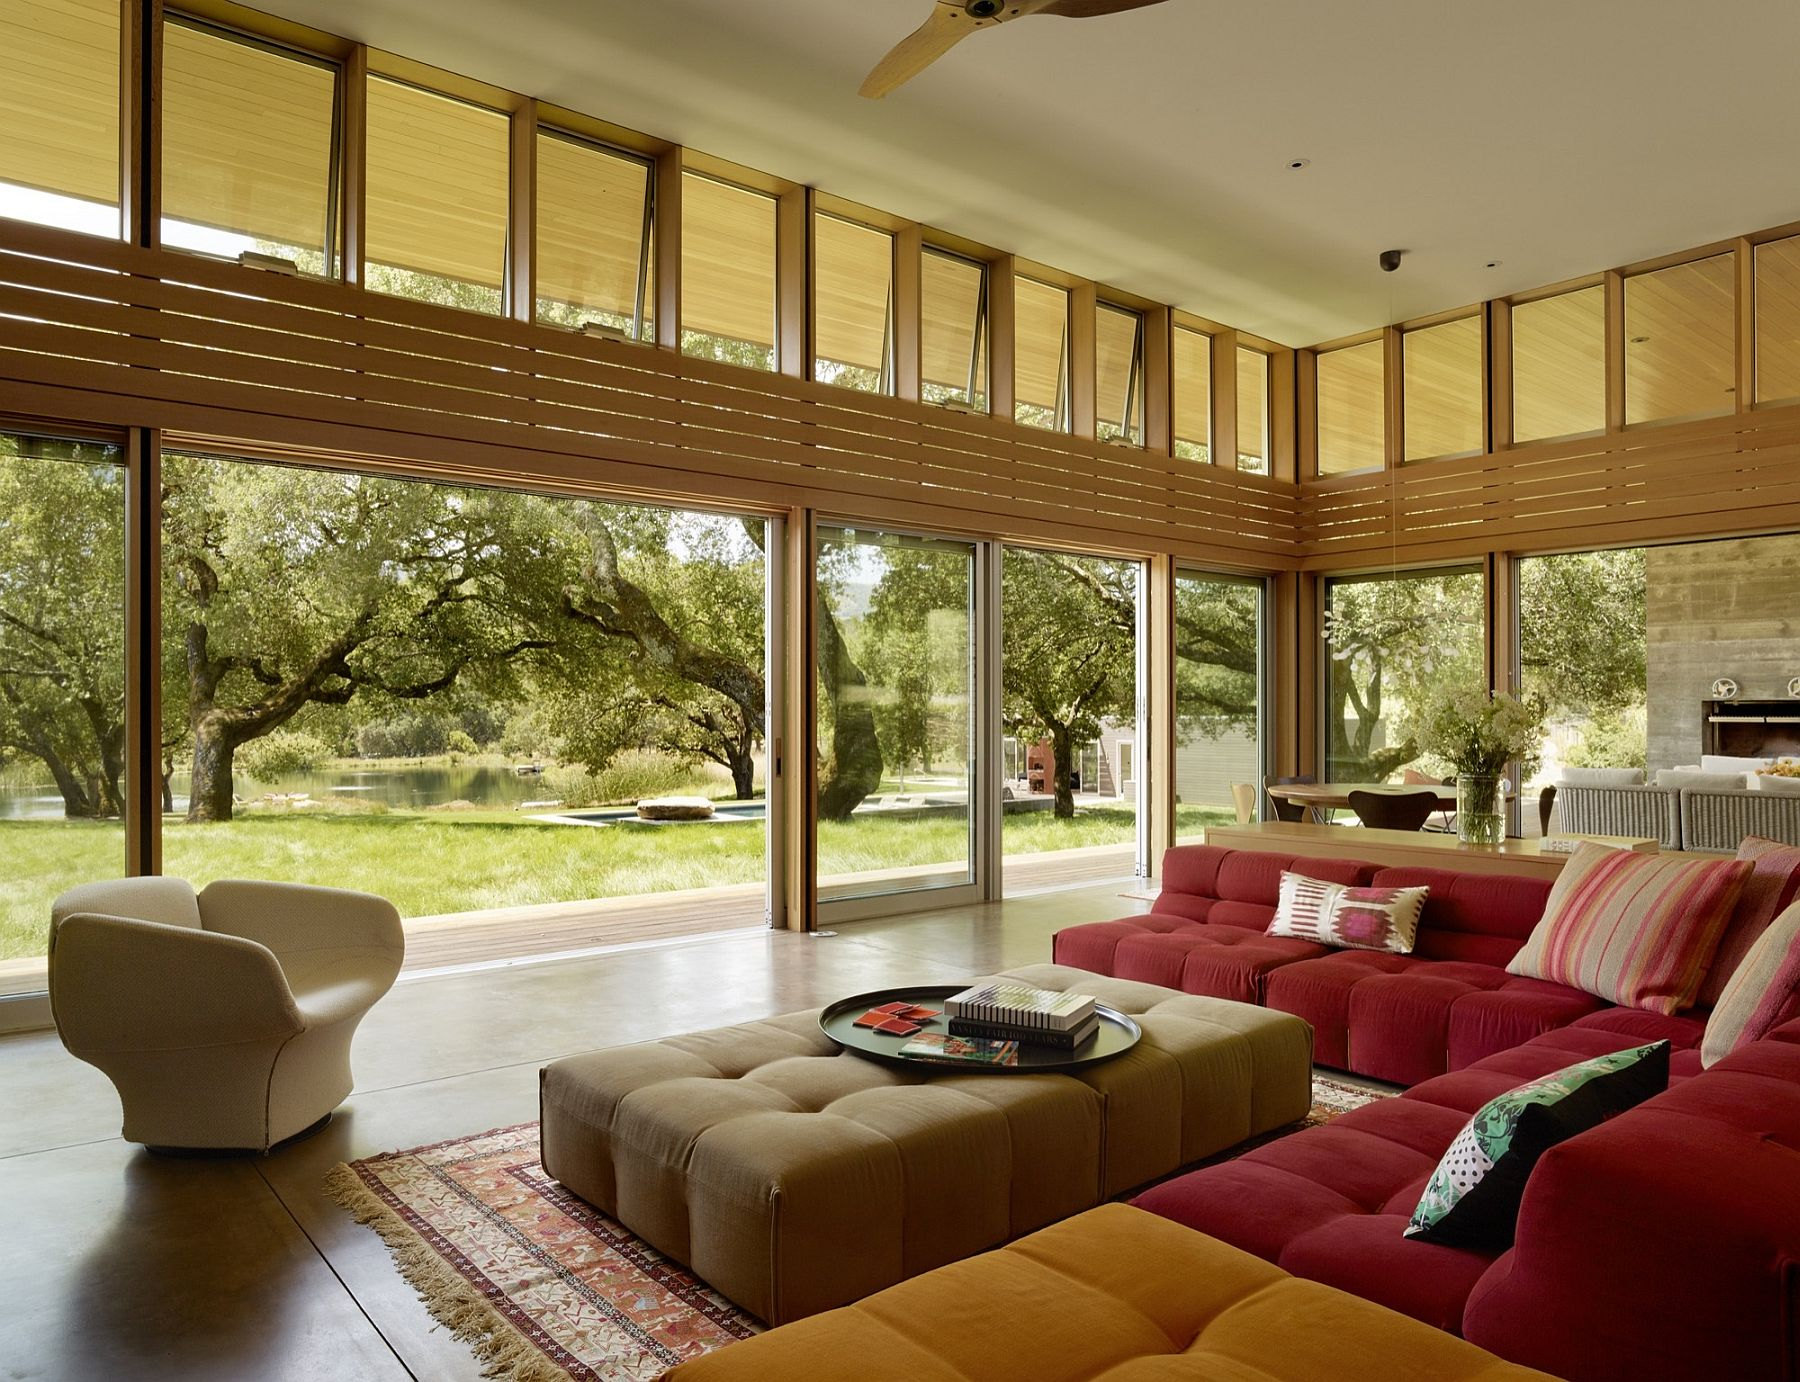 Modular seating and relaxing natural views epitomize the stylish living room of the Sonoma Residence